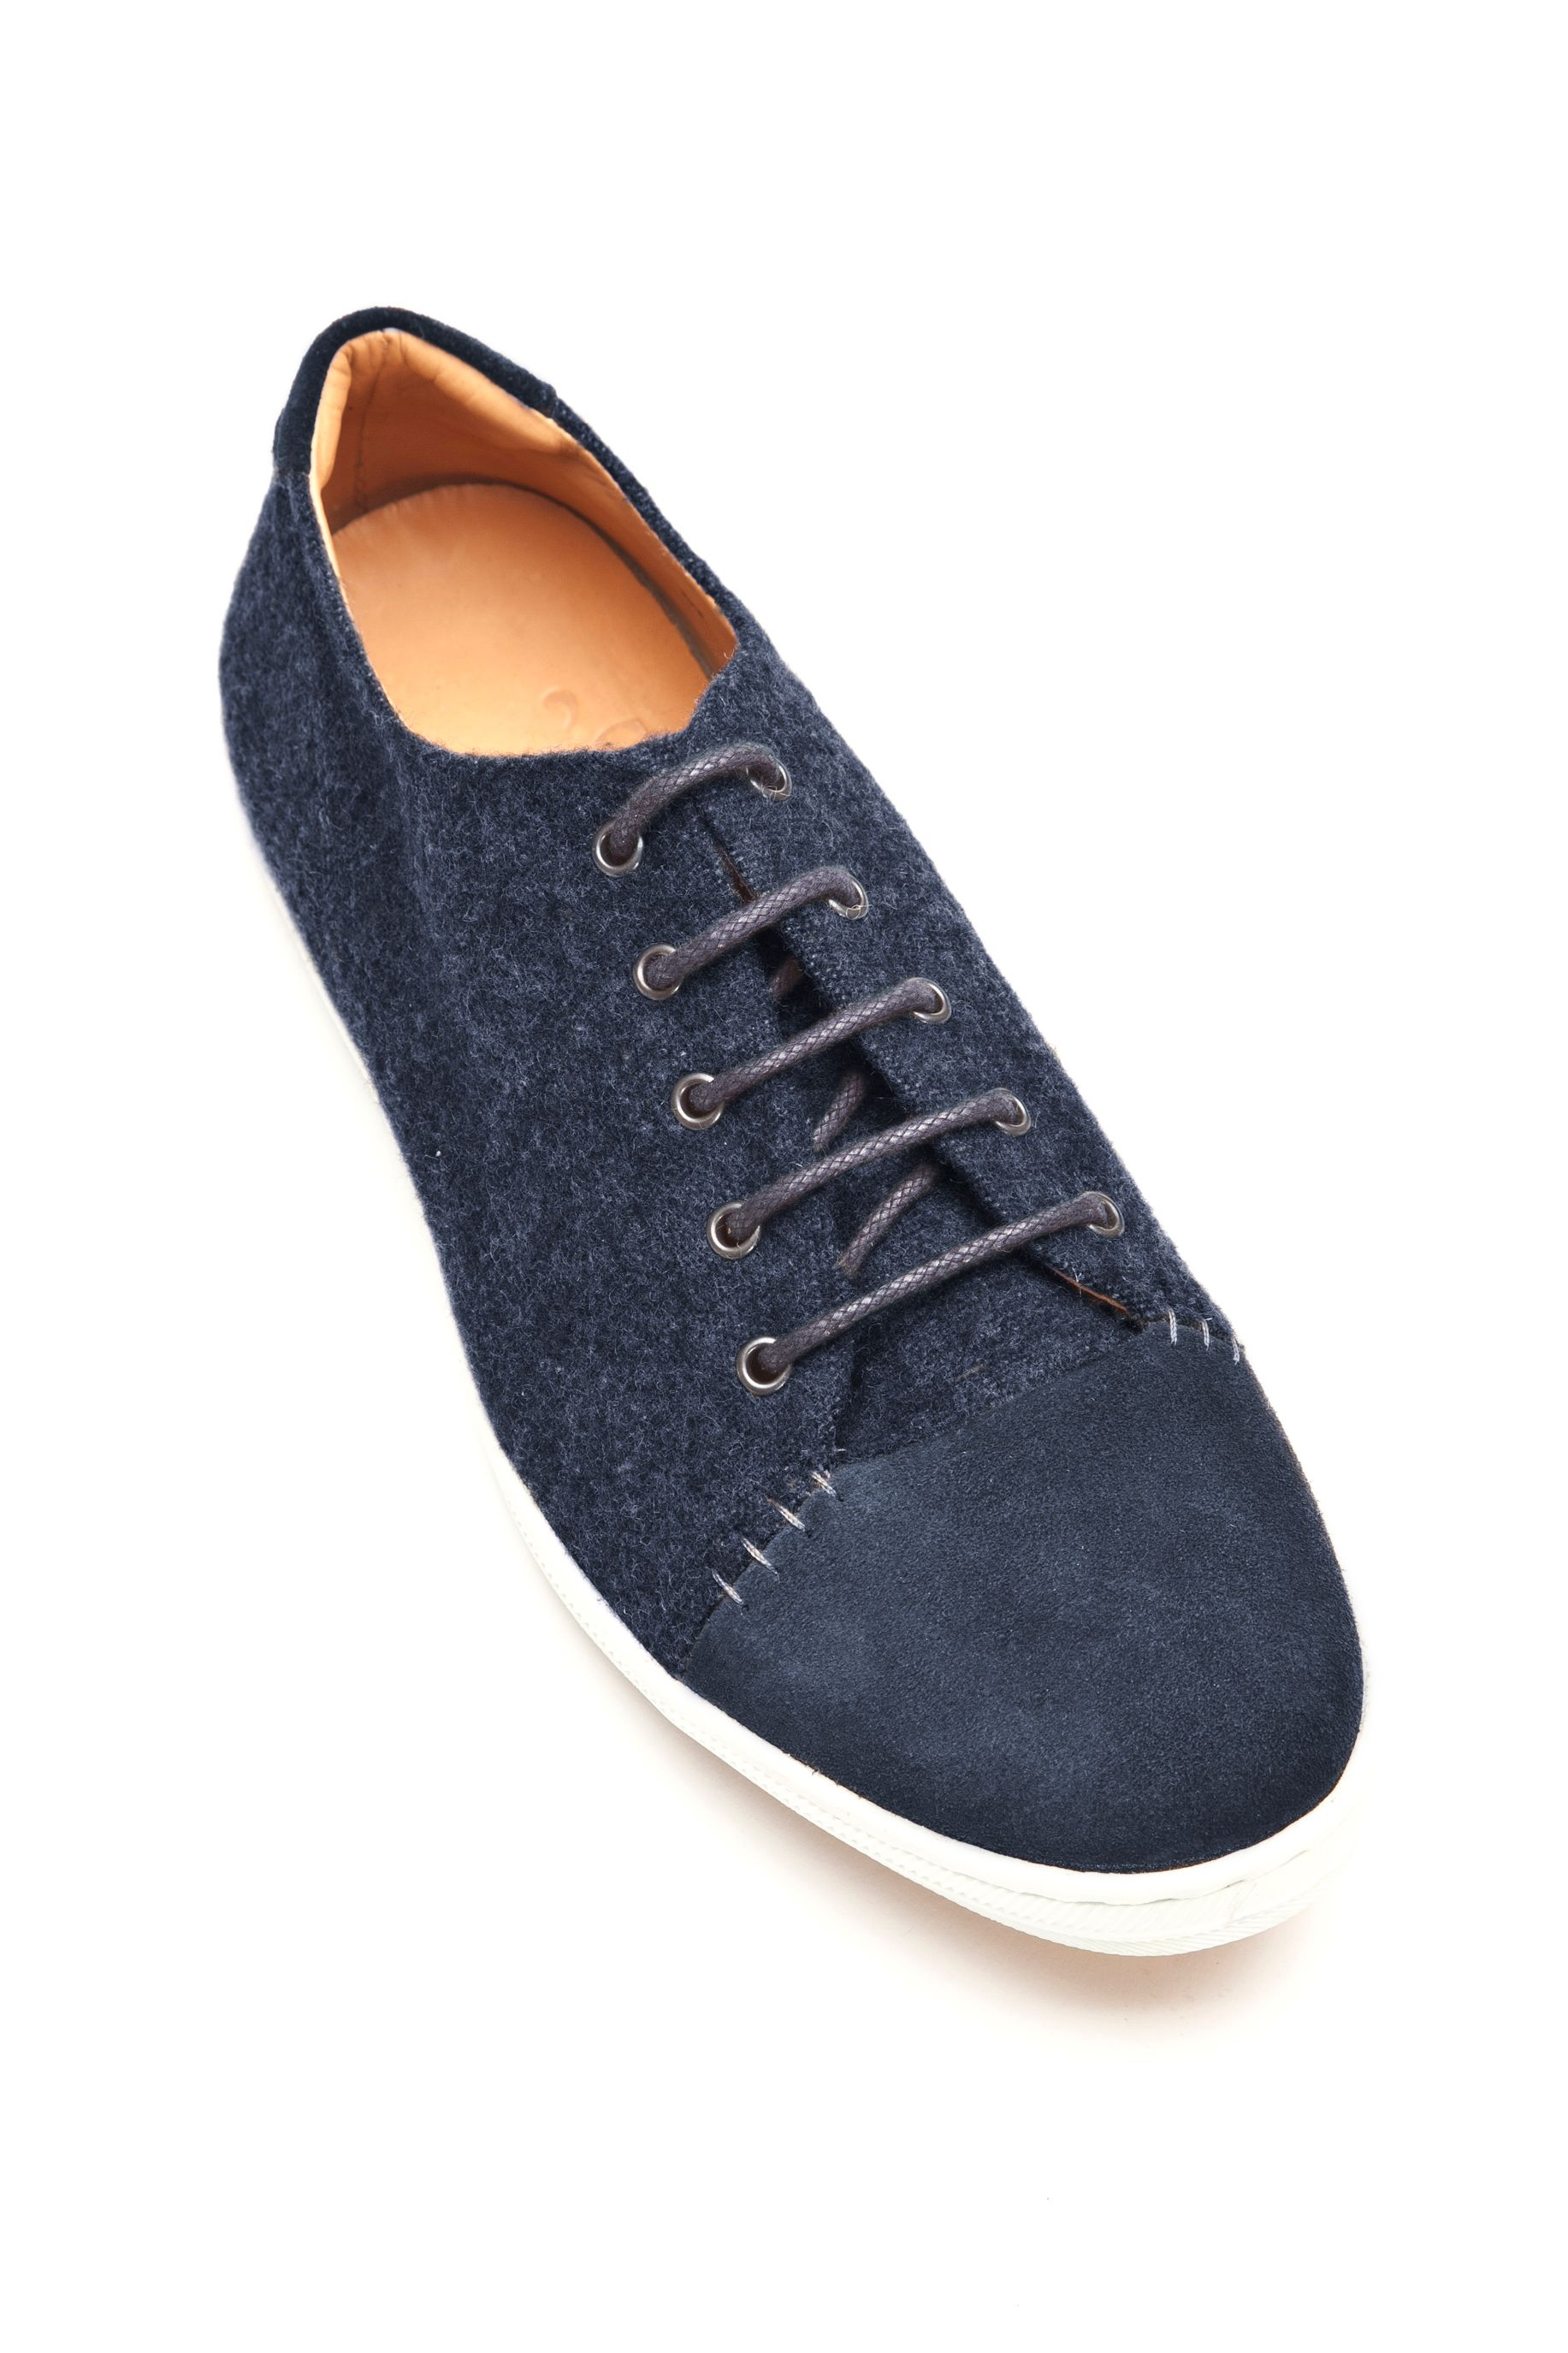 Desmond Deluxe navy fabric trainers